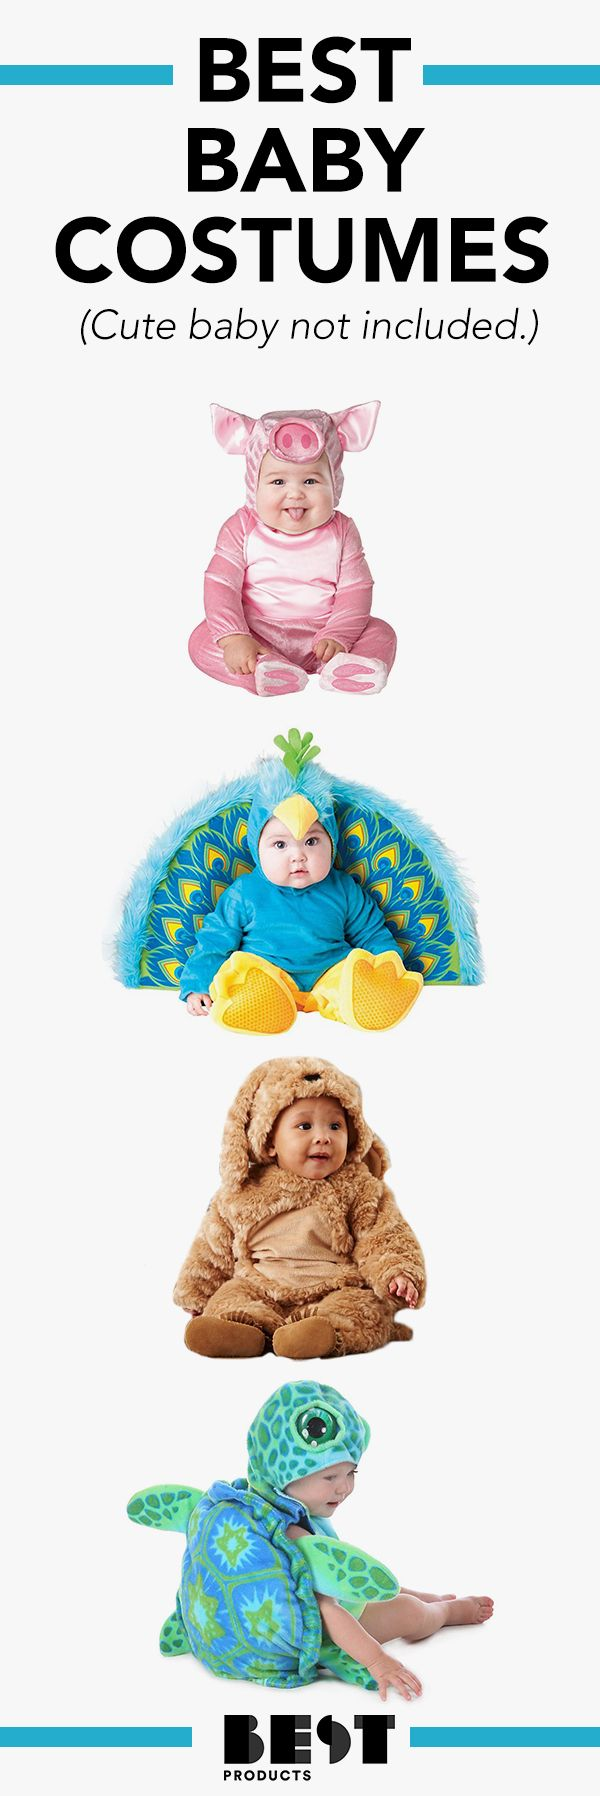 sc 1 st  BestProducts.com & 20+ Best Baby Halloween Costumes of 2018 - Adorable Baby Costume Ideas